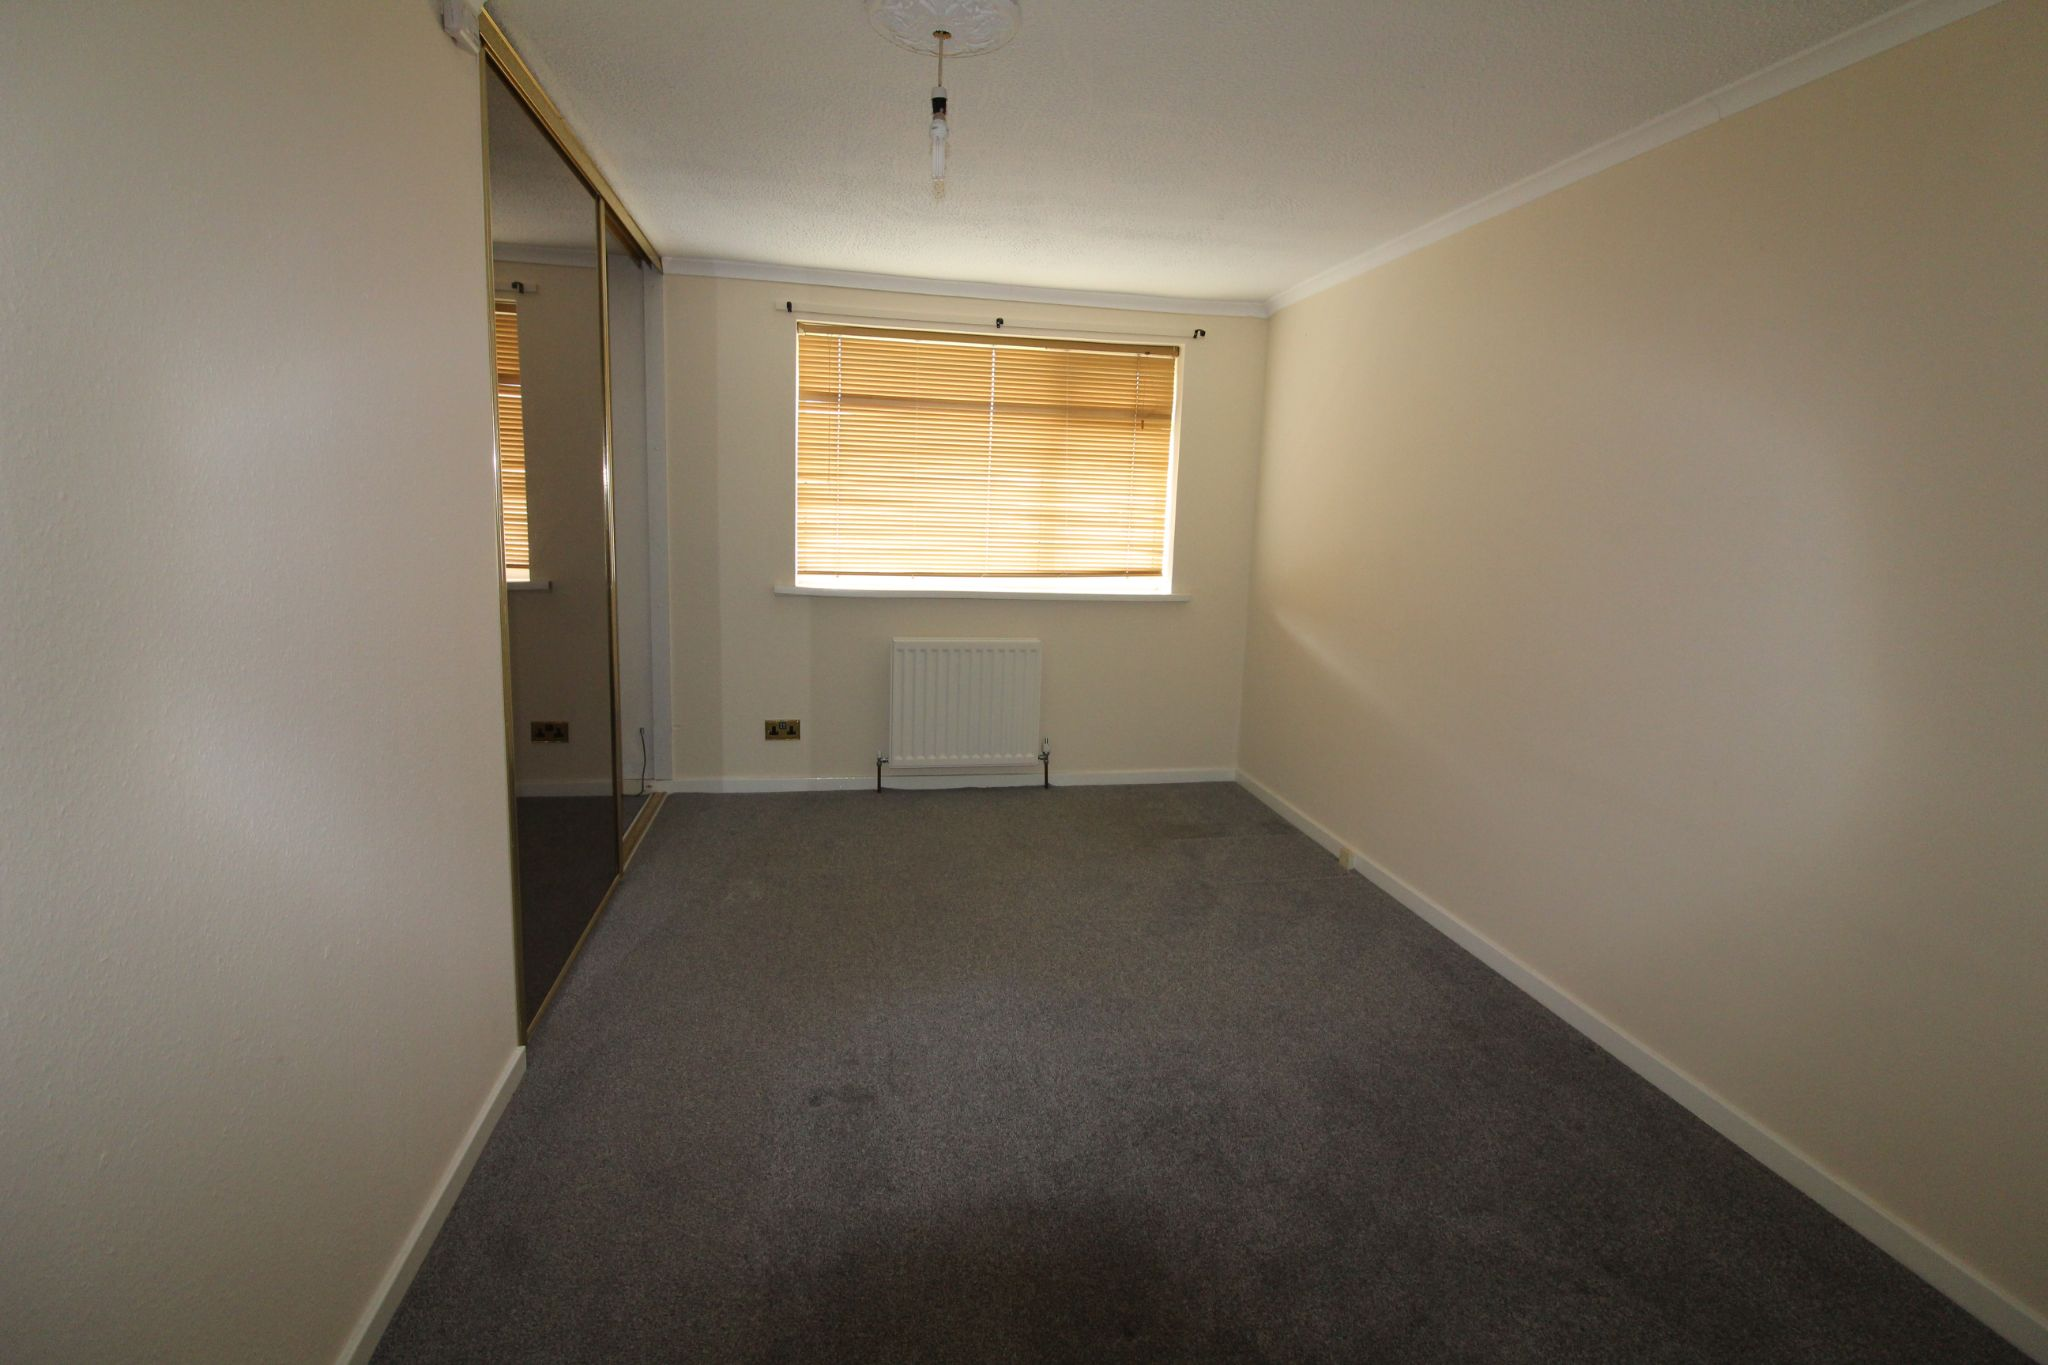 2 bedroom mid terraced house For Sale in Durham - Photograph 10.